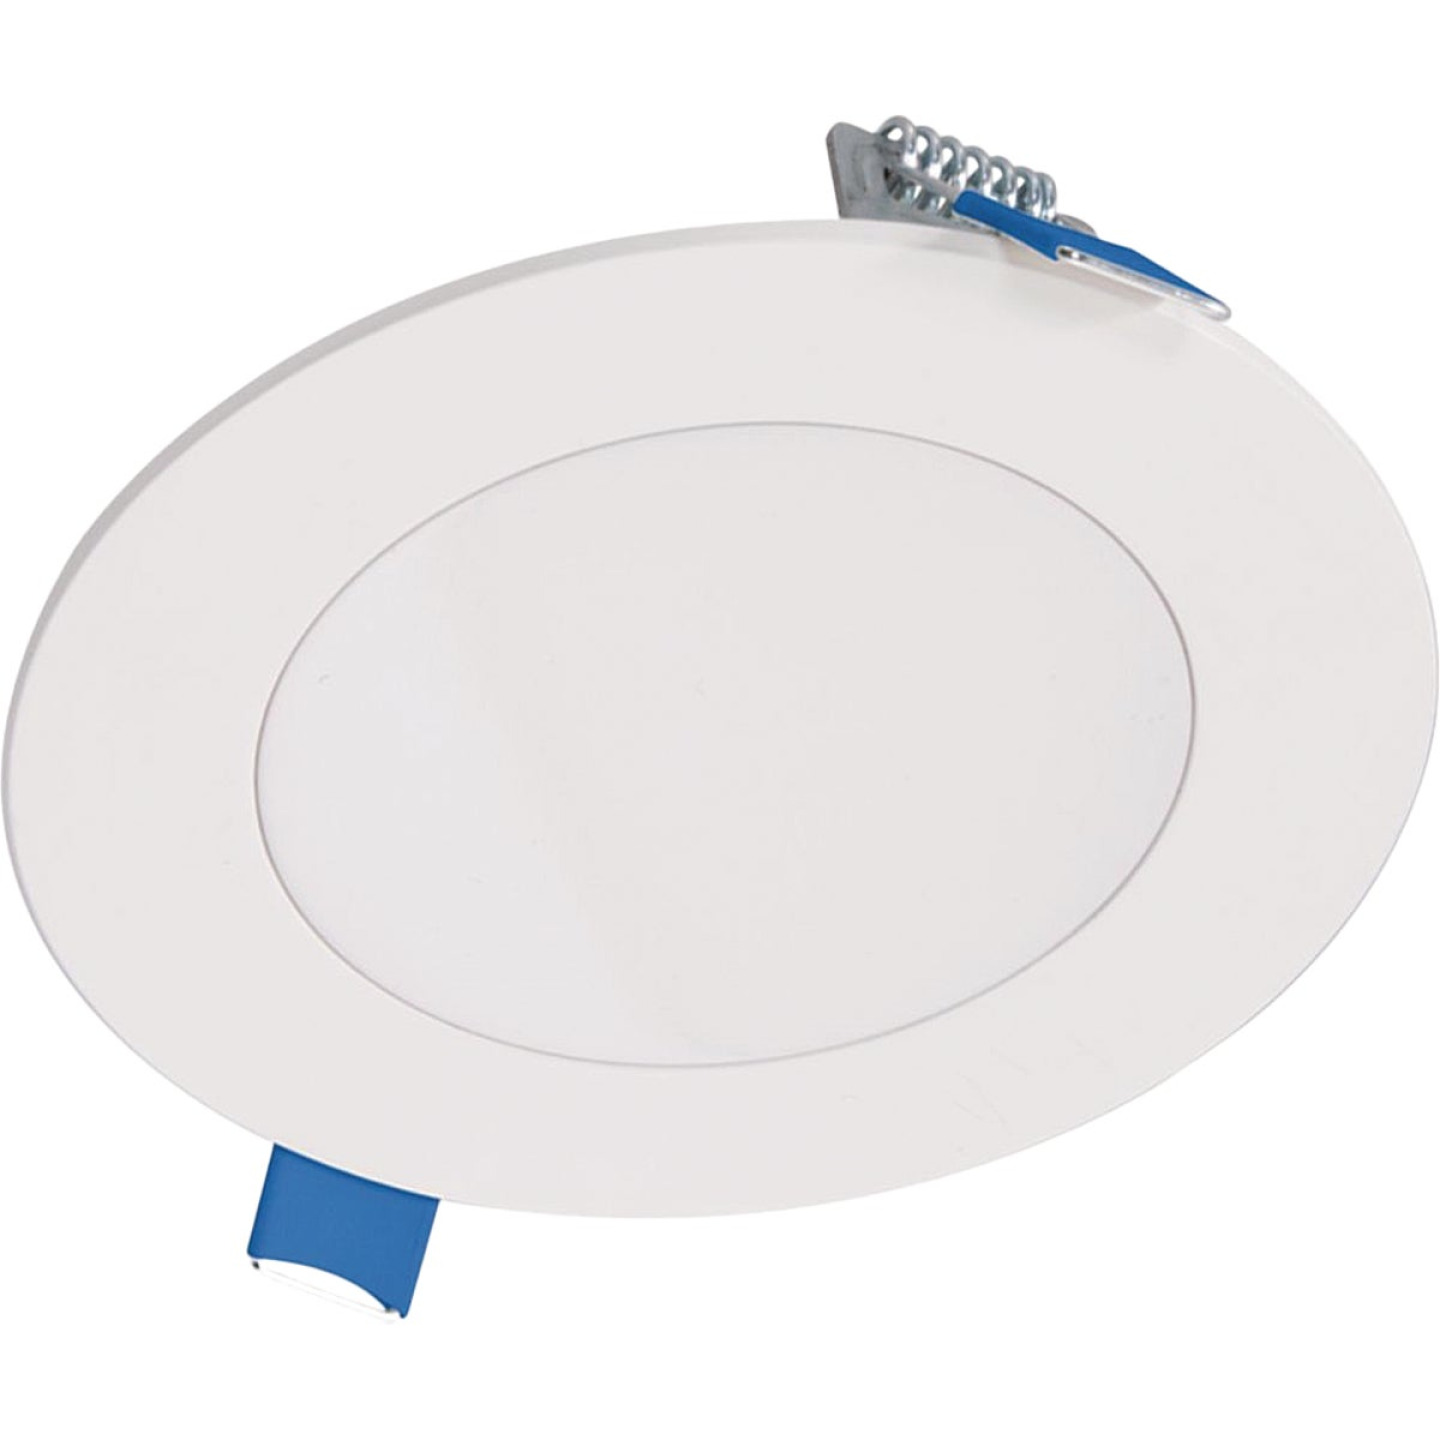 Liteline Trenz ThinLED 4 In. New Construction/Remodel IC Rated White 680 Lm. 4000K Recessed Light Kit Image 1